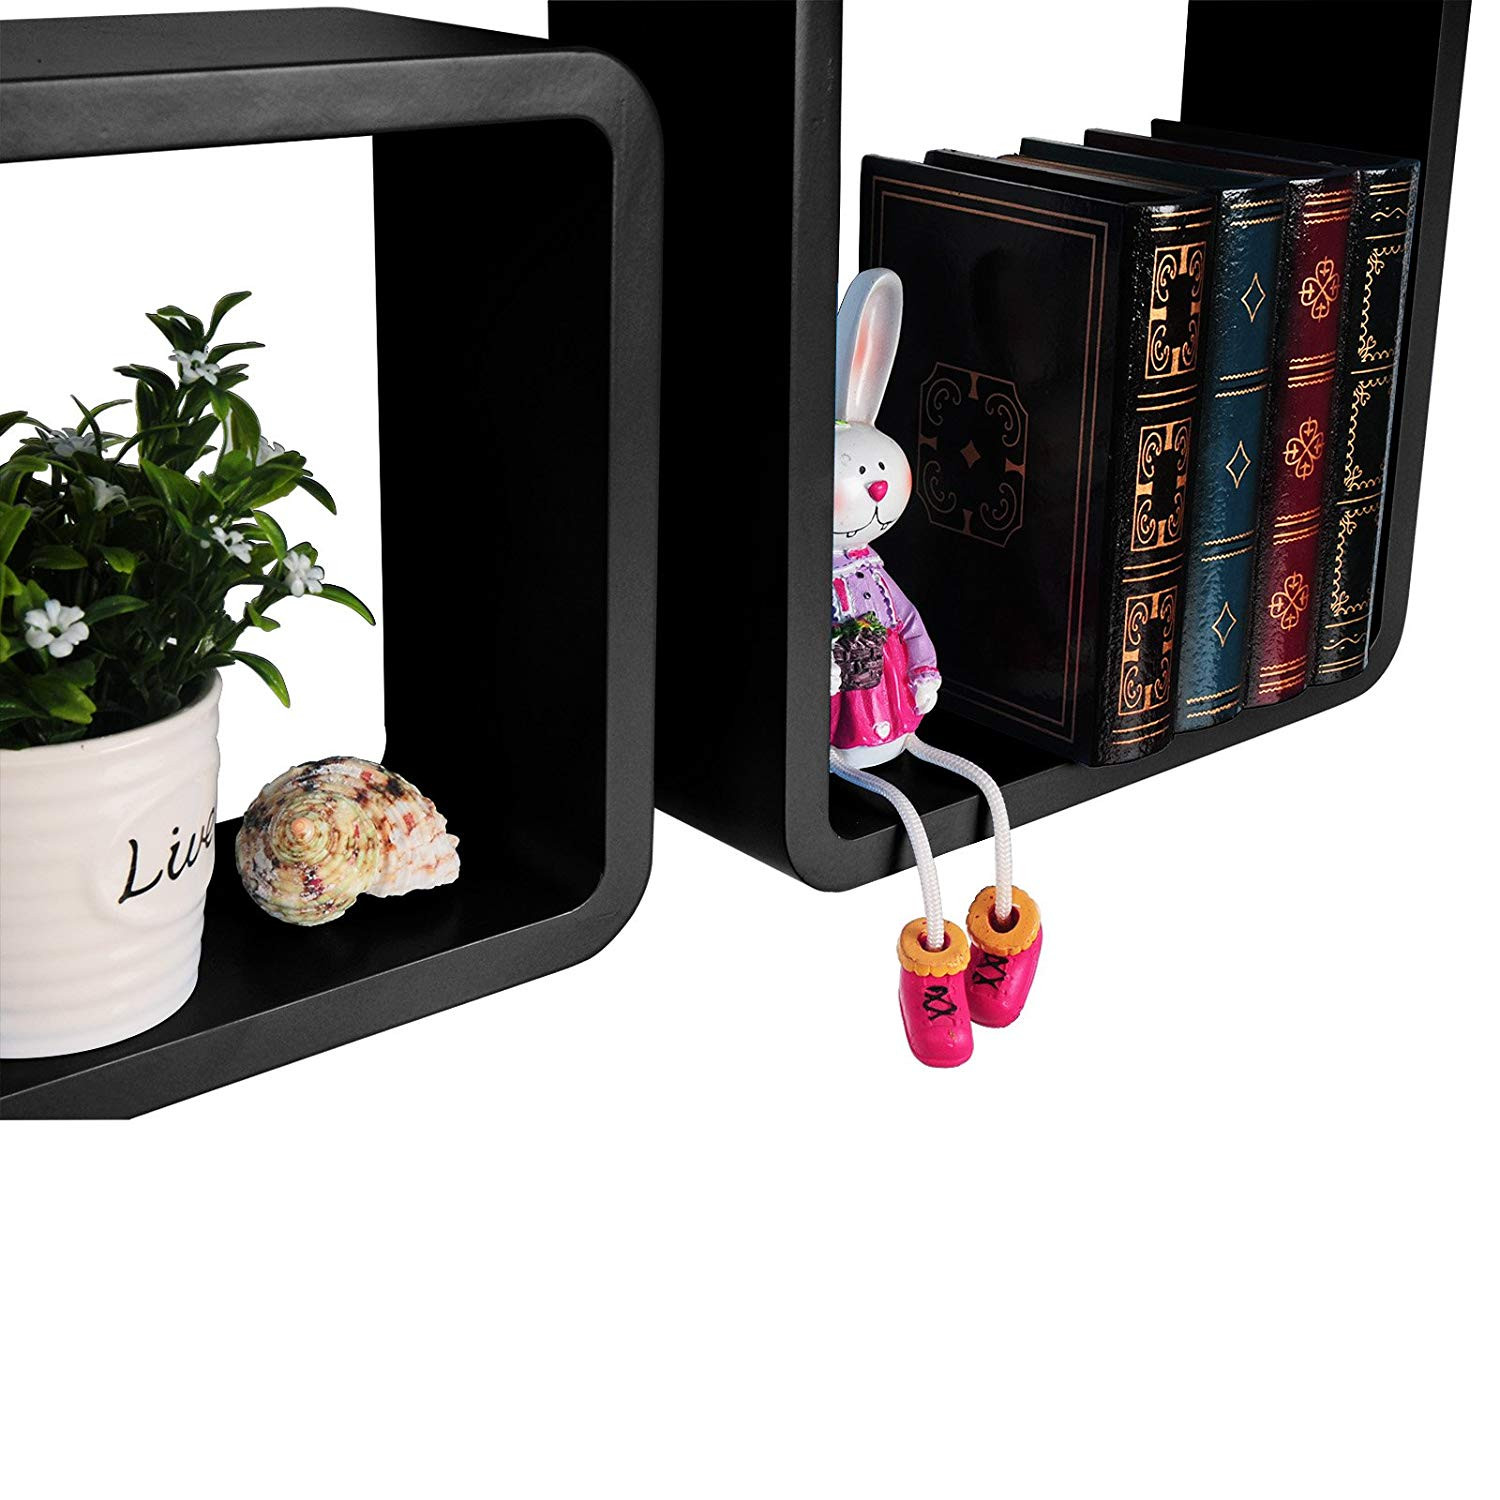 Amazon WOLTU 3 Piece Floating Shelf Set Decorative Rounded Cube Shelves CD Racks Black WS12blk a Home & Kitchen